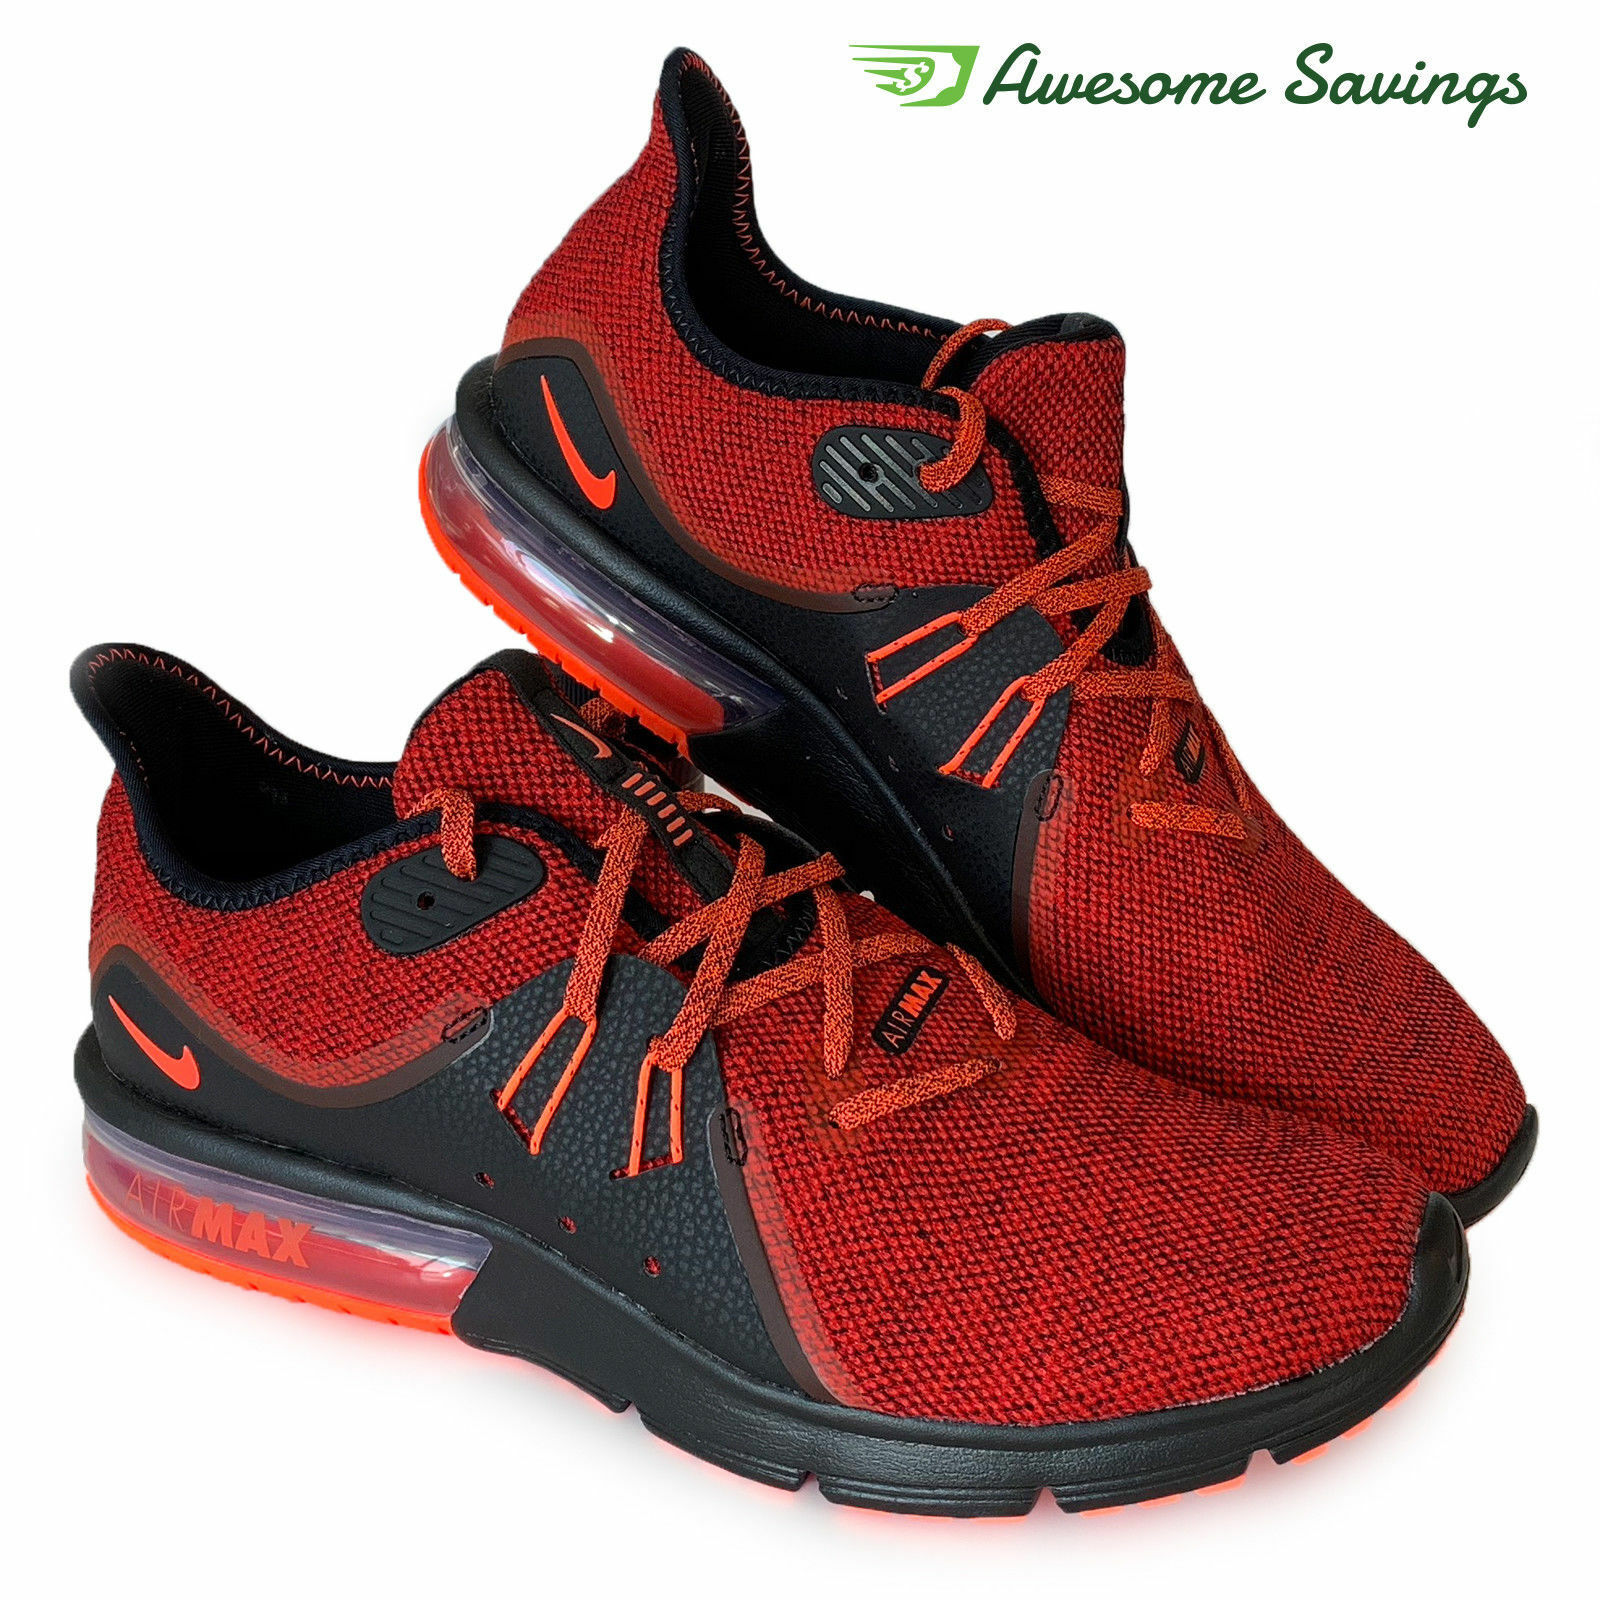 quality design 08979 ad7c5 Nike Air Max Sequent 3 3 3 Men s Size 11.5 Running 921694-066 Red Black